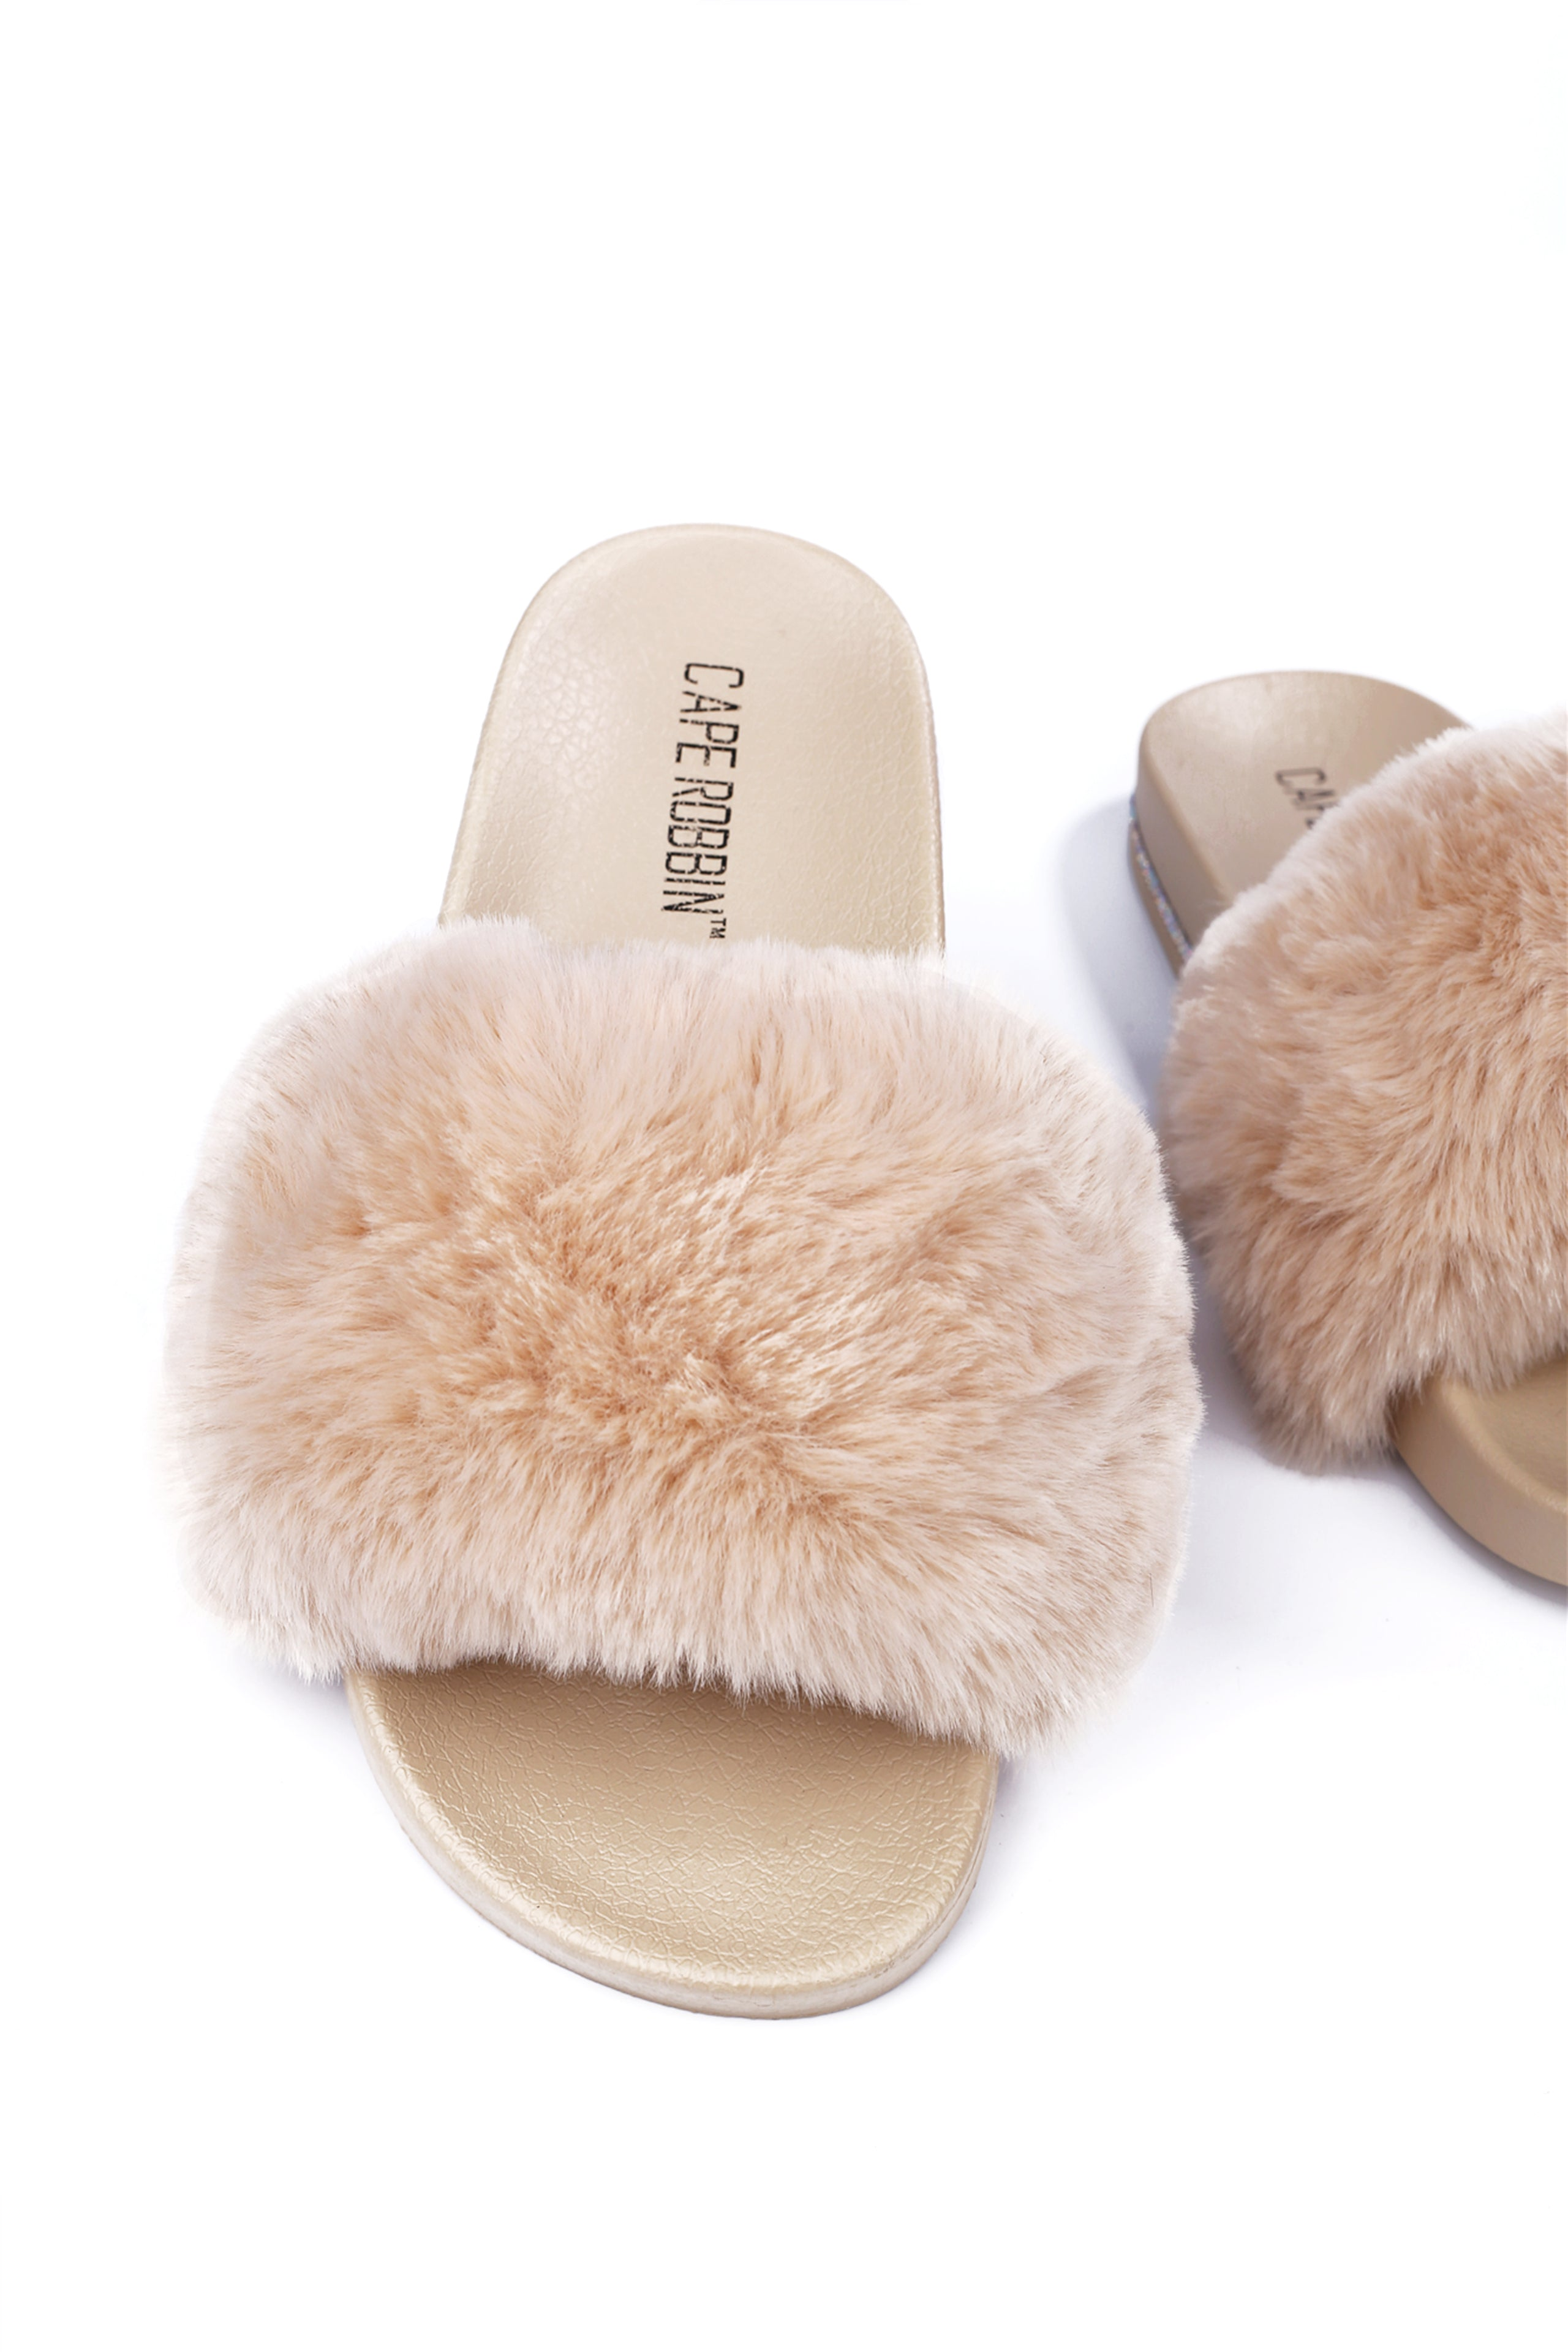 BOO VOGUE THE HOUSE SOFT FUR SLIDES-NUDE